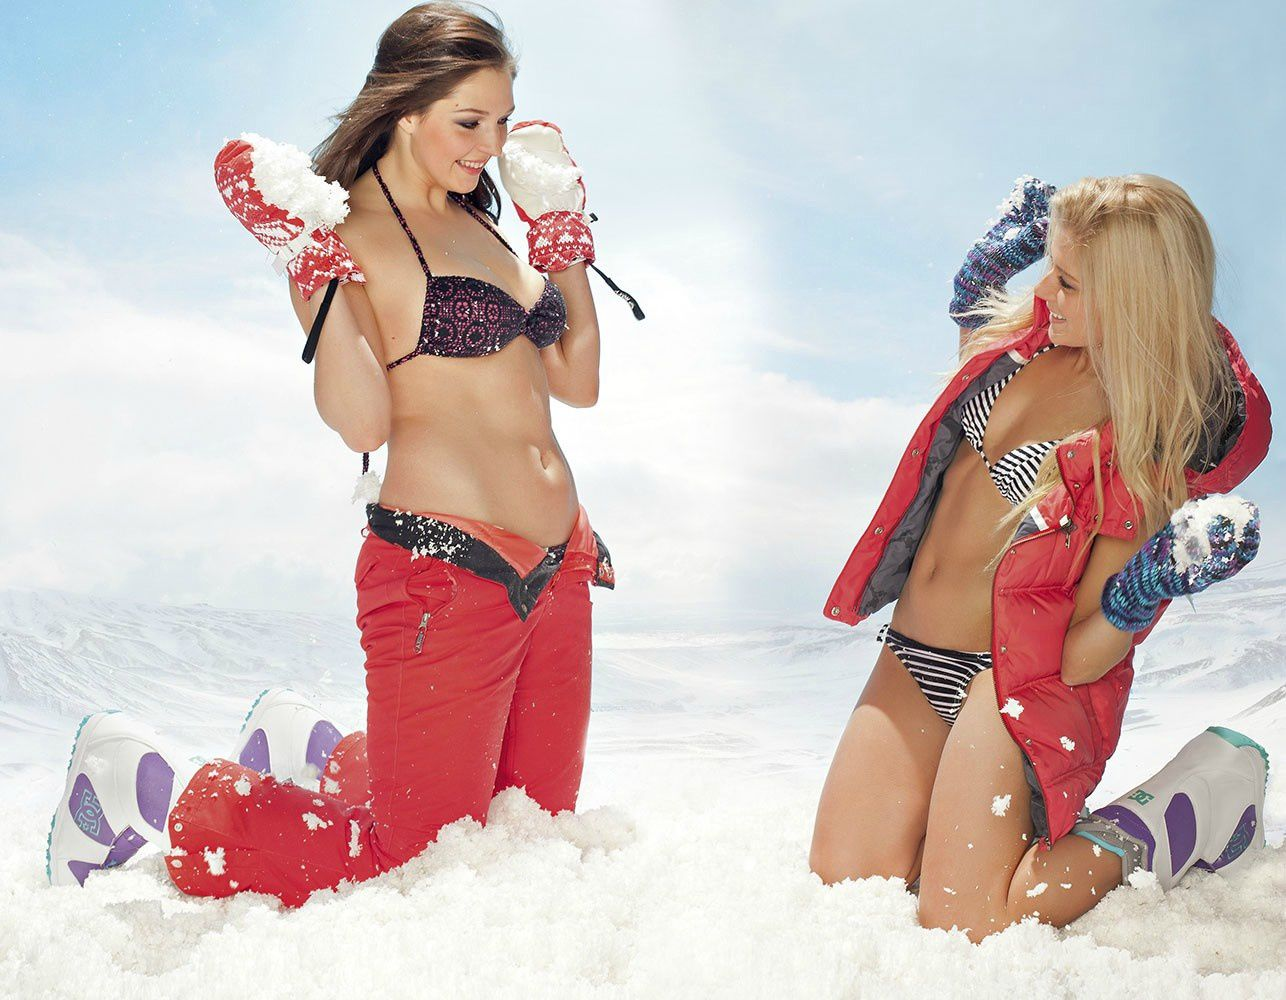 Russian snowboarders Alena Zavarzina and Alyona Alekhina are sexy when throwing snow at each other. See them at olympic games